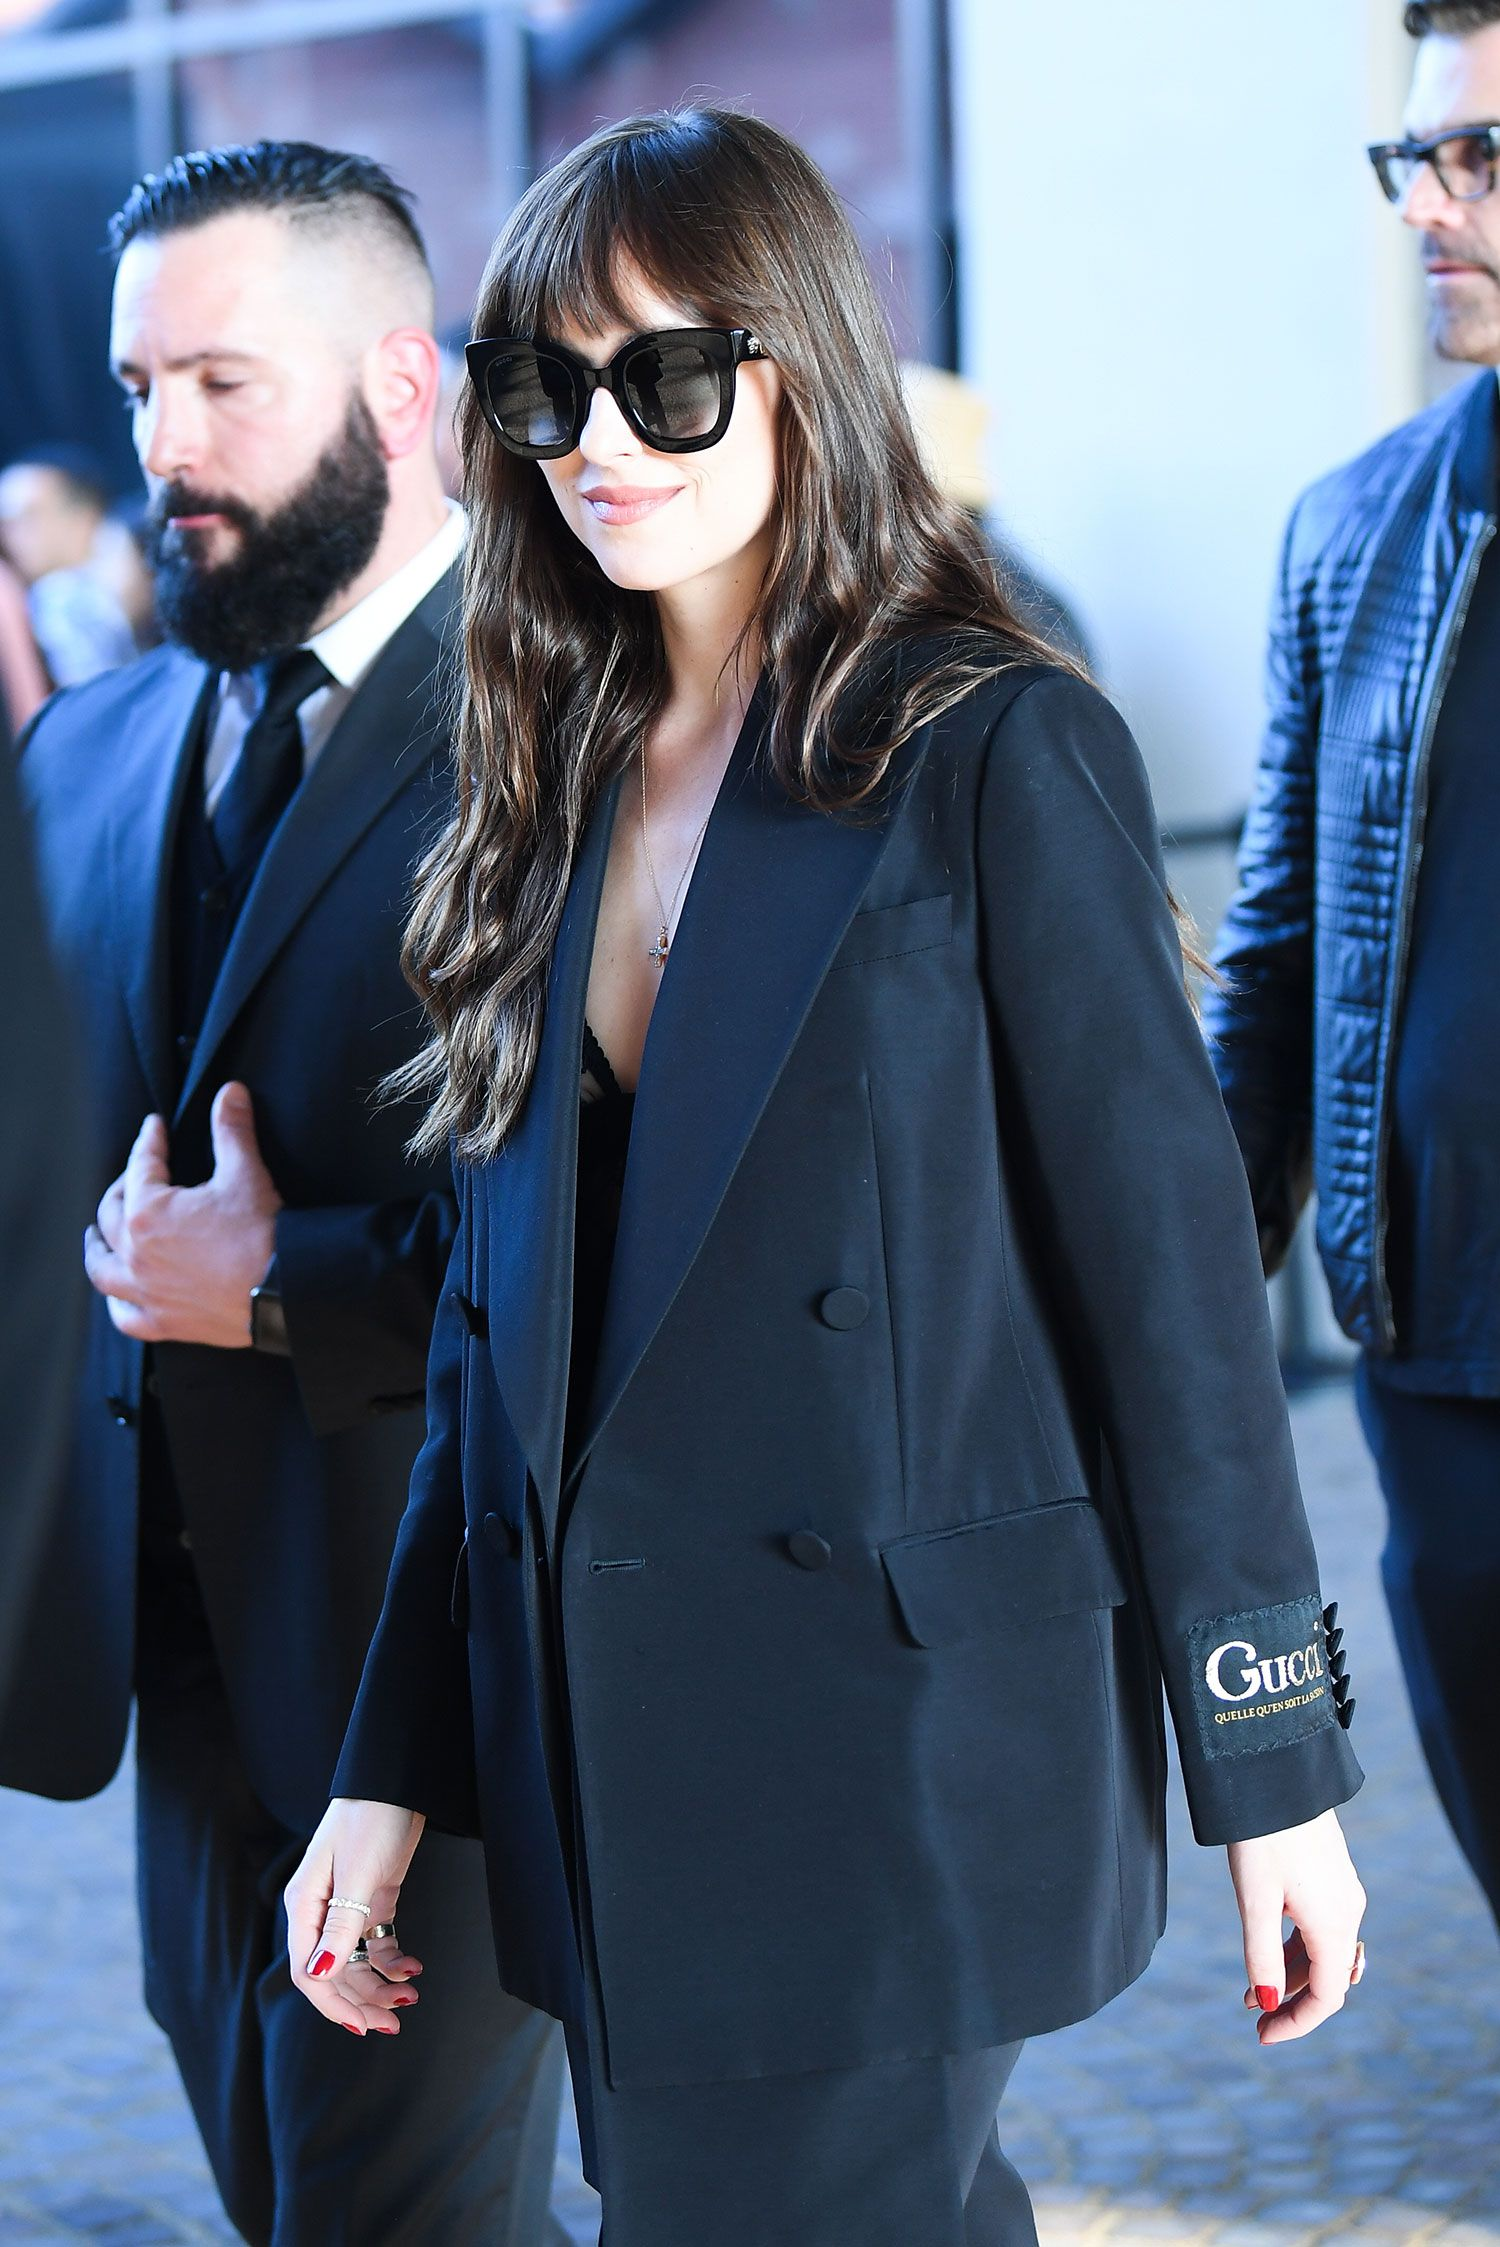 Dakota Johnson Pairs Lingerie With a Gucci Suit for Chic Milan Fashion Week Look